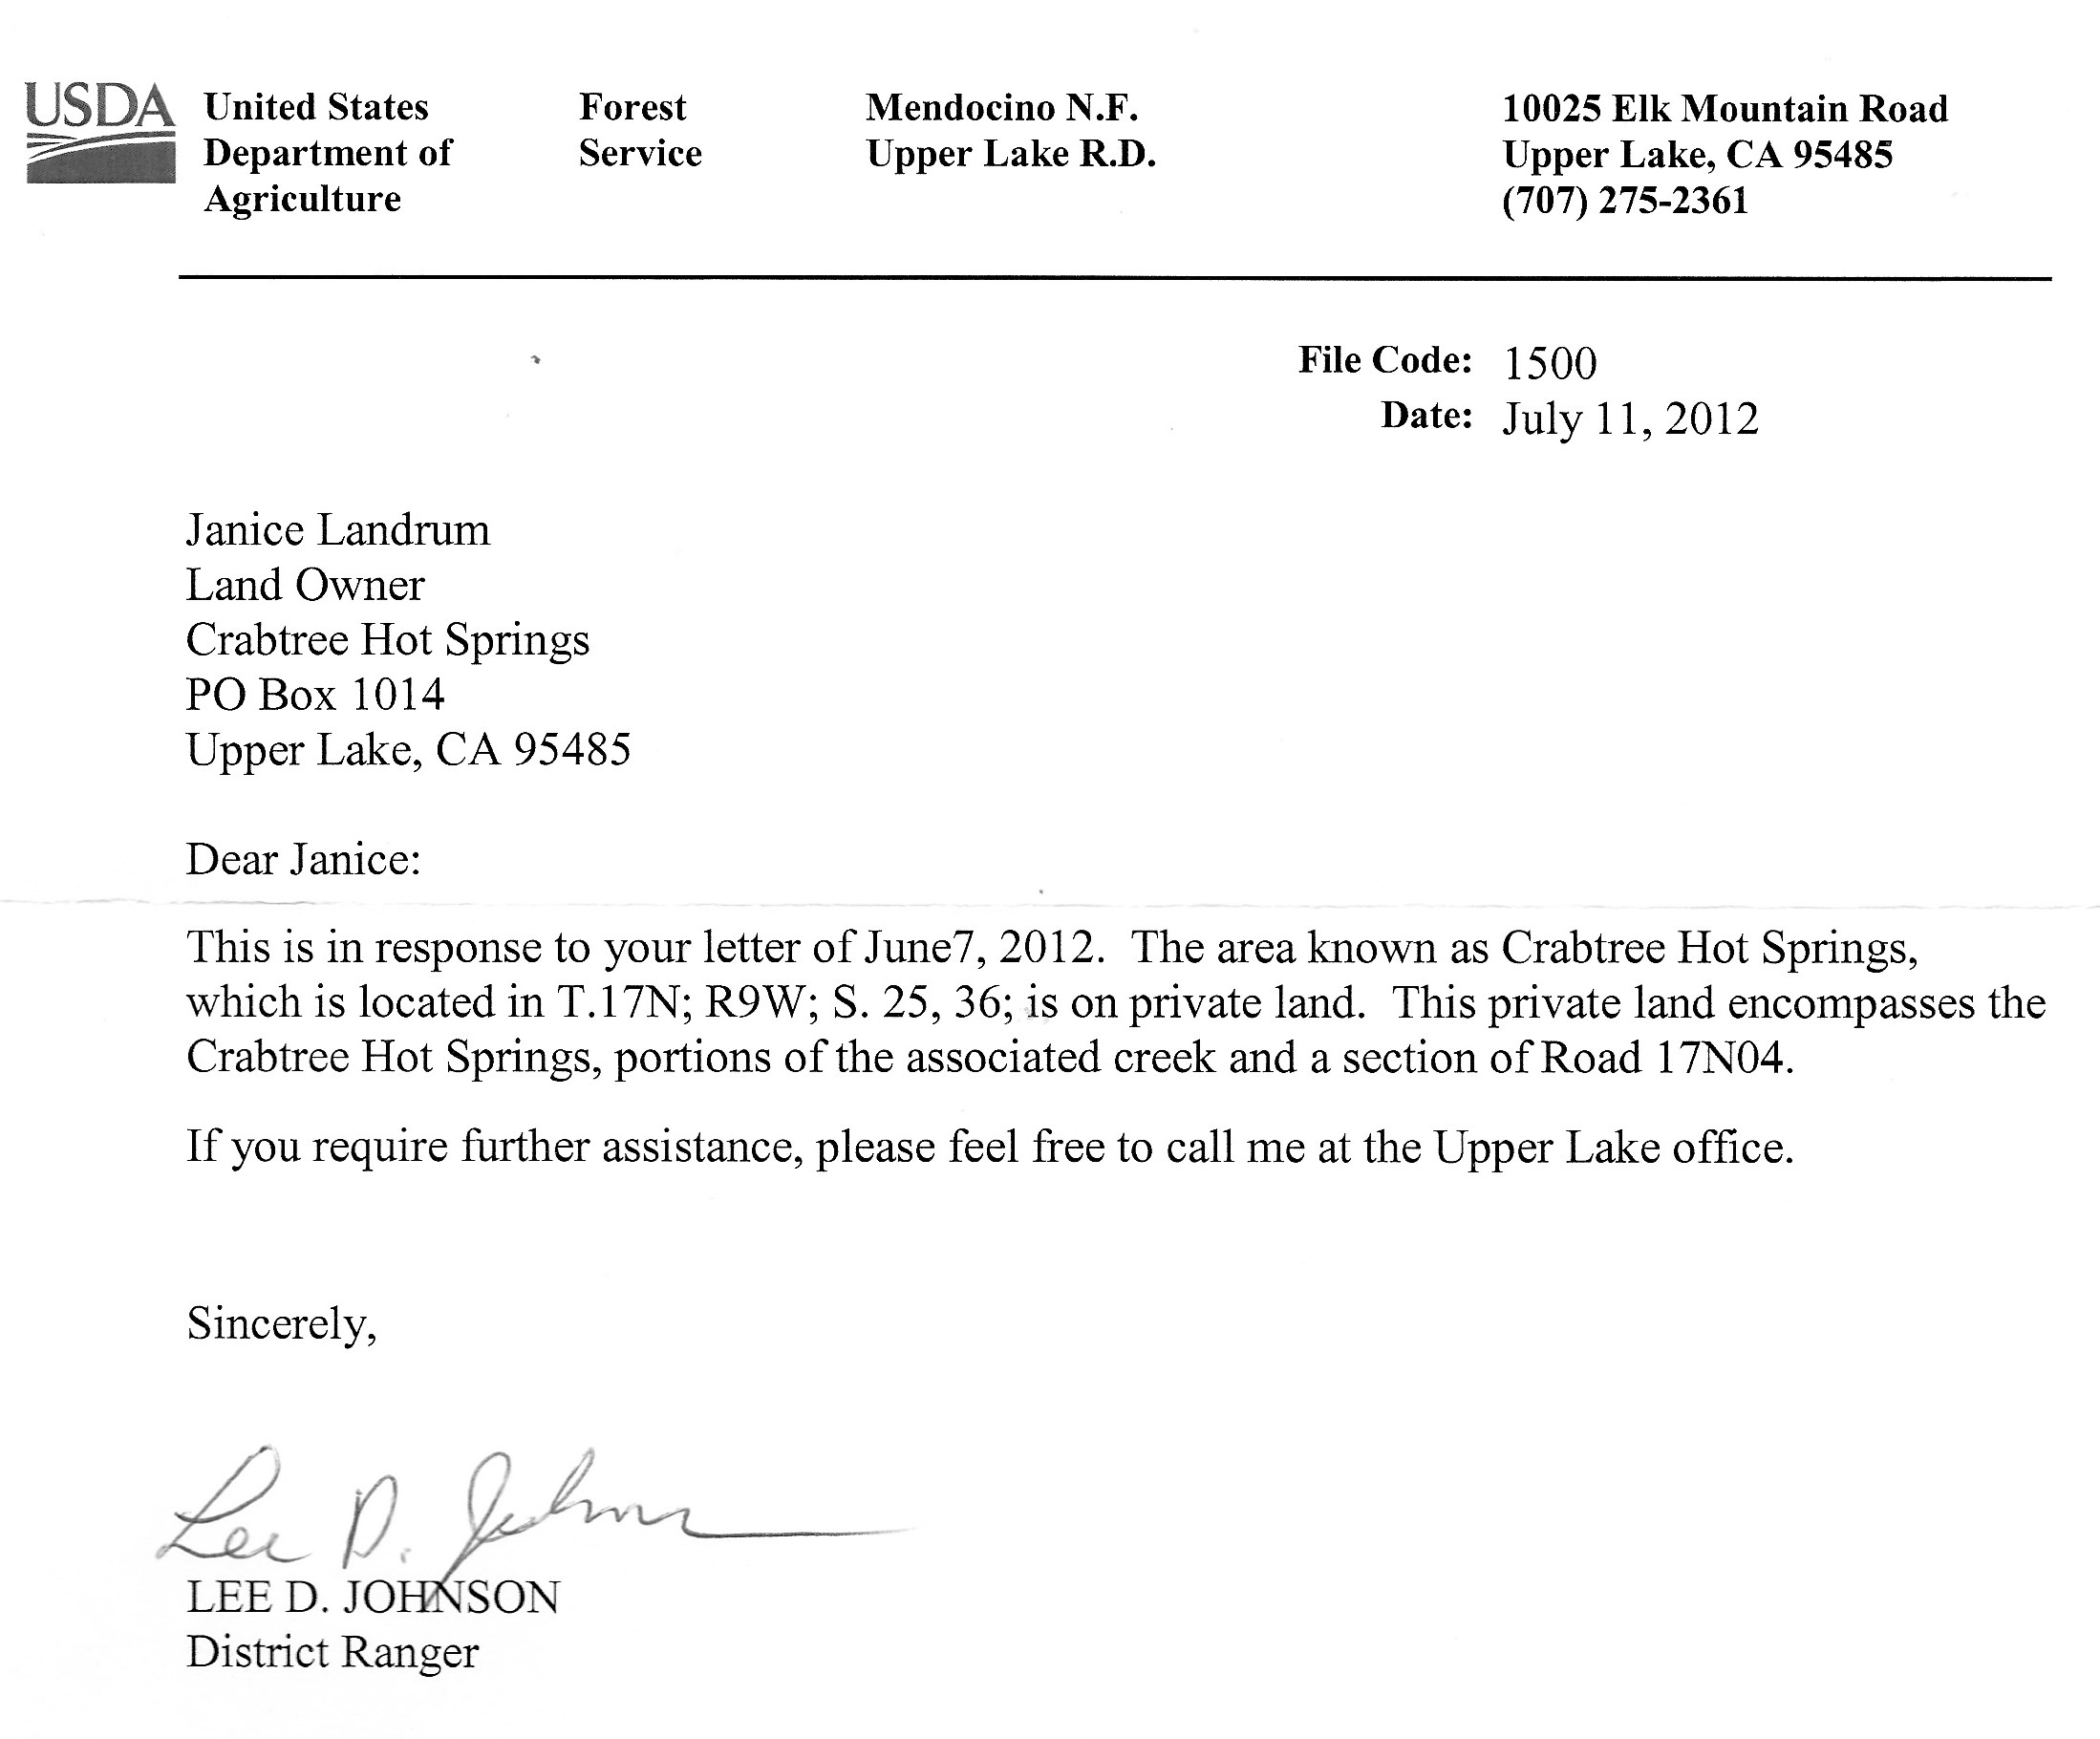 USDA Letter About Crabtree Hot Springs